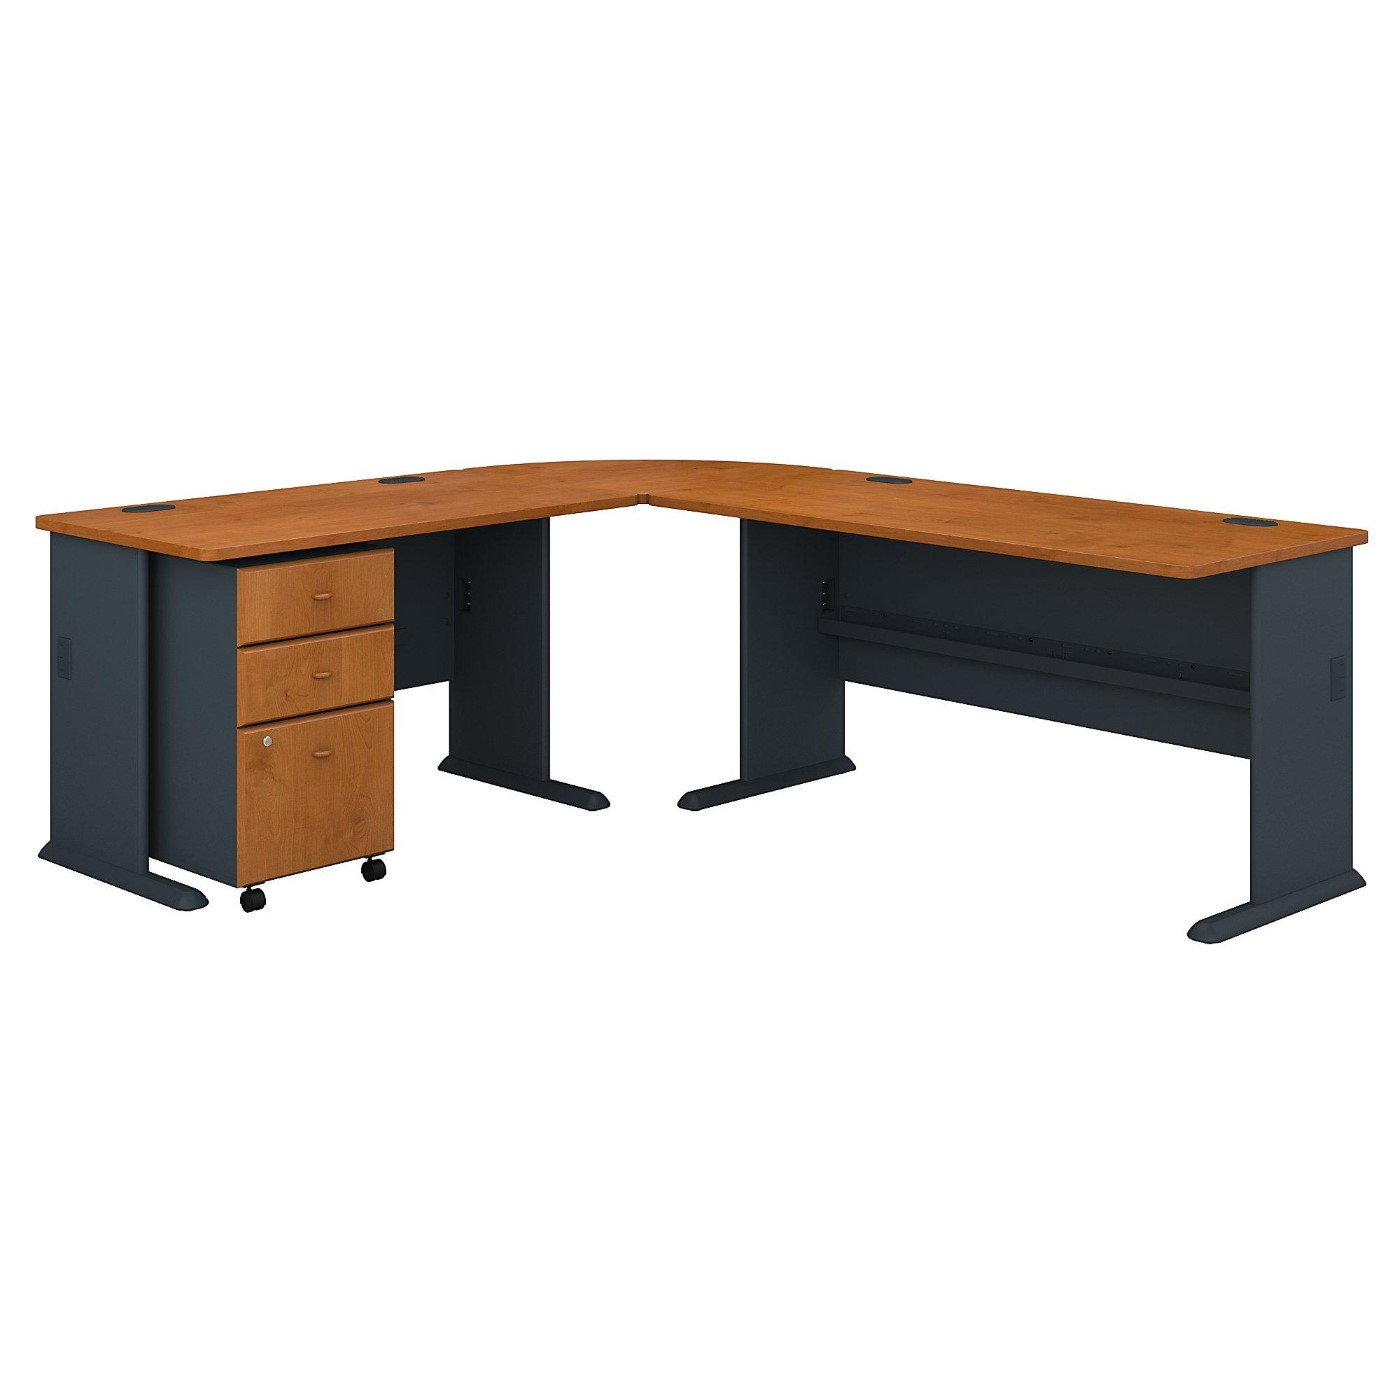 <font color=#c60><b>BUSH BUSINESS FURNITURE SERIES A 87W X 75D L SHAPED DESK WITH MOBILE FILE CABINET. FREE SHIPPING</font></b></font>